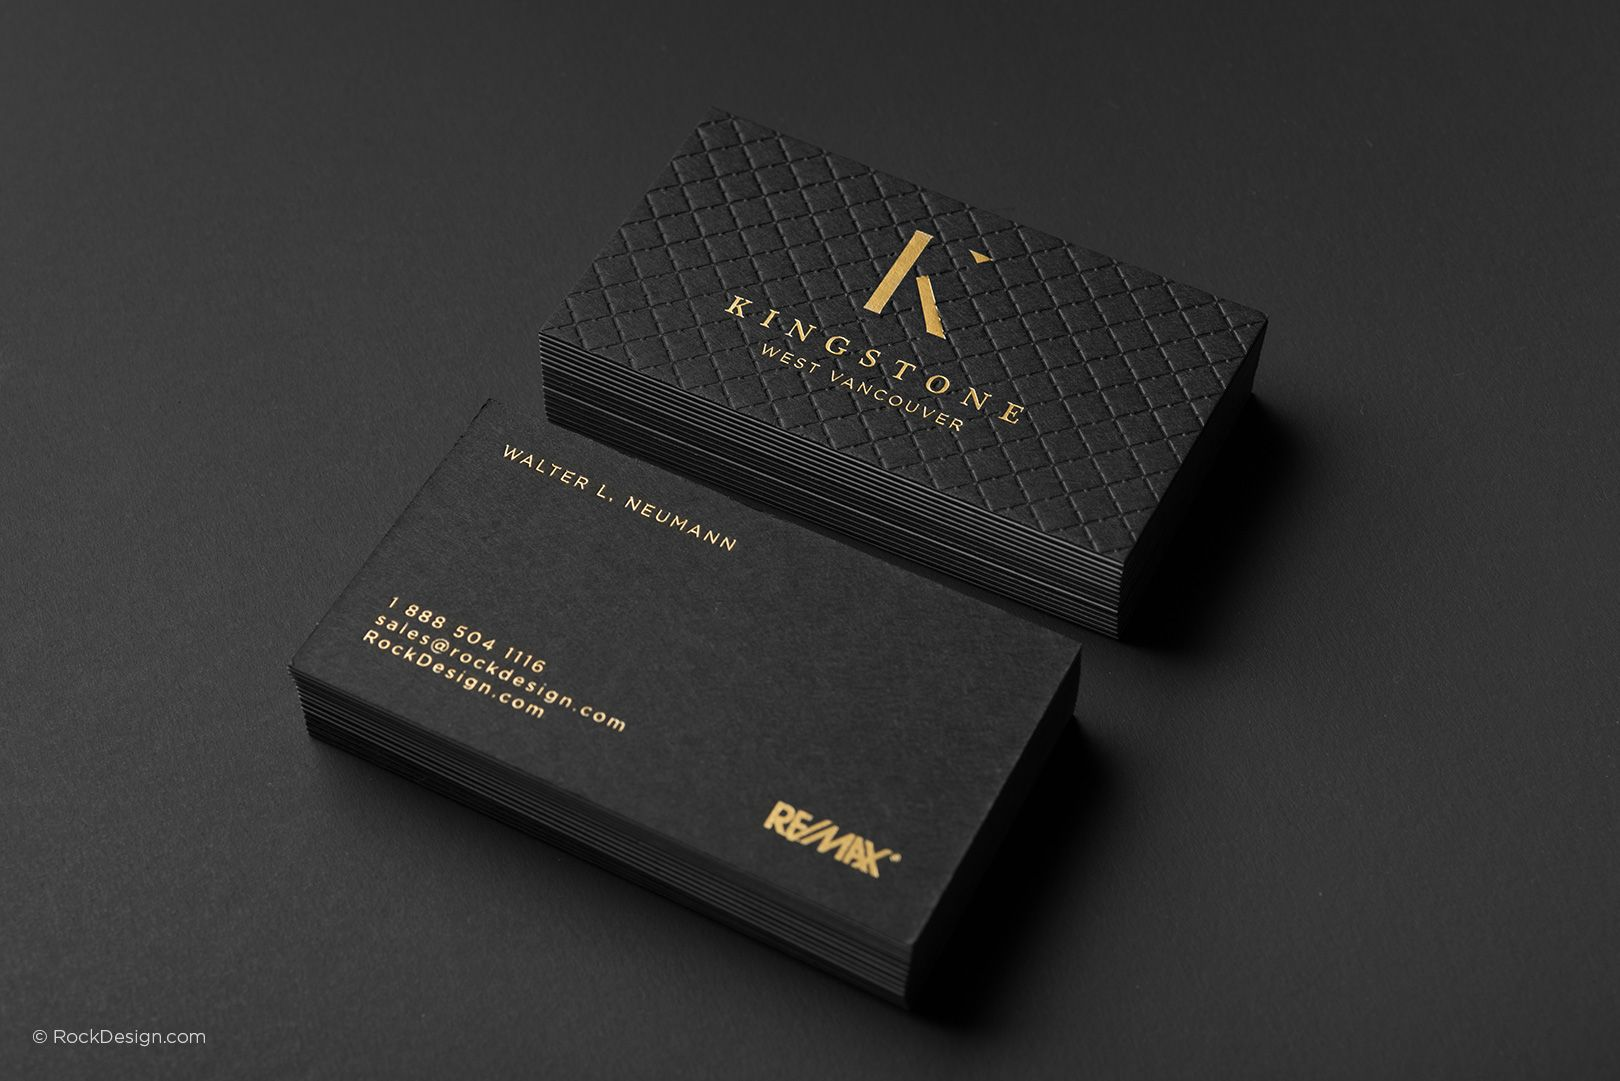 Luxury realtor triplex with gold foil business card template luxury realtor triplex with gold foil business card template kingstone rockdesign luxury business card printing colourmoves